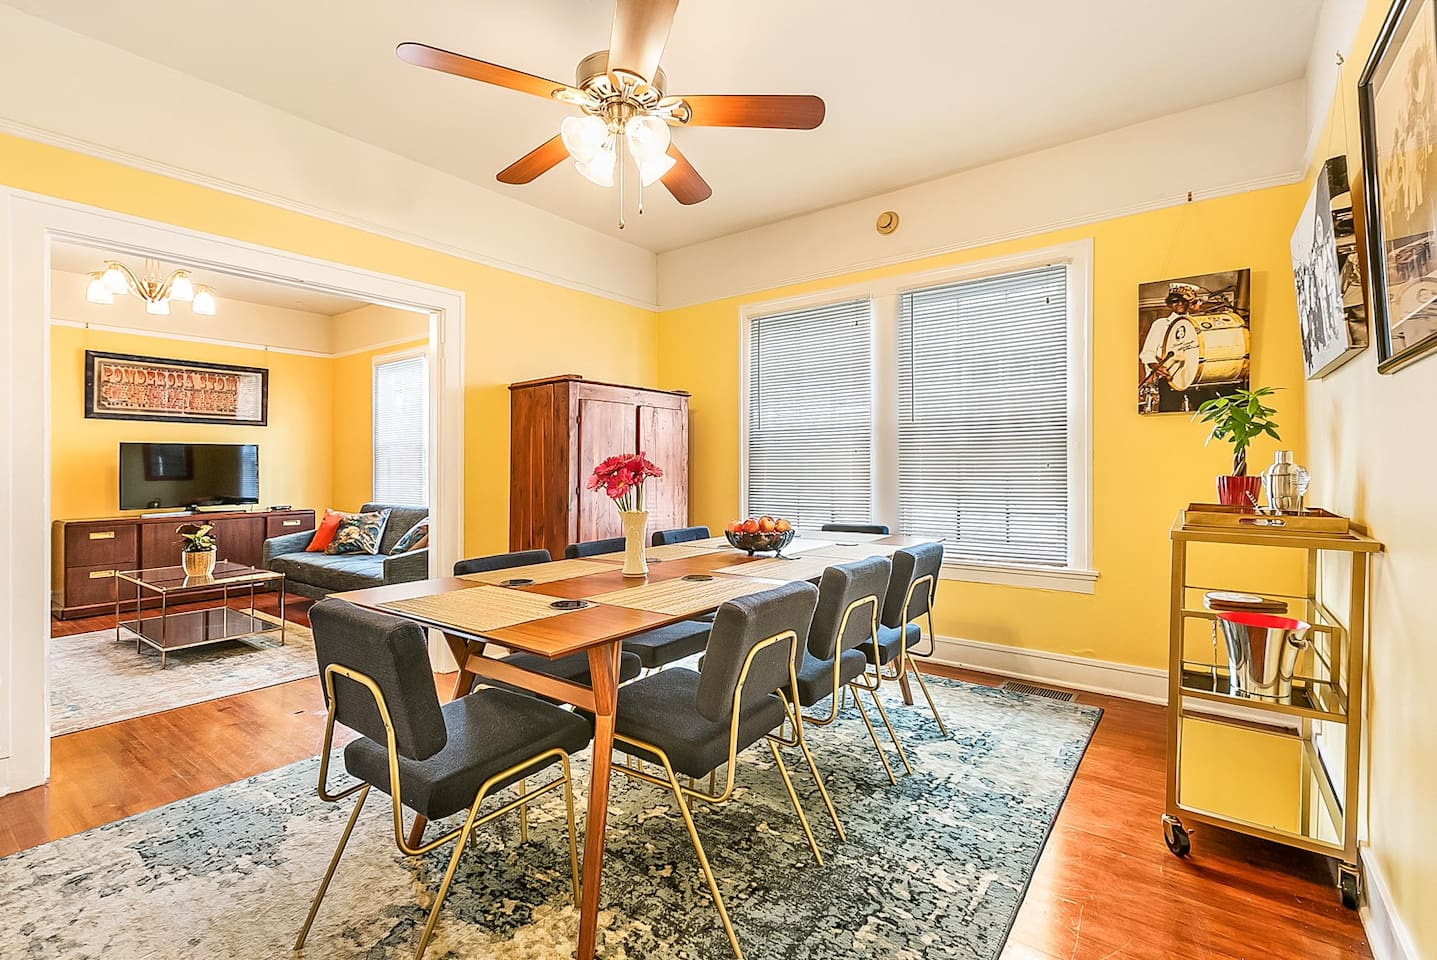 Large dining room flows into living room